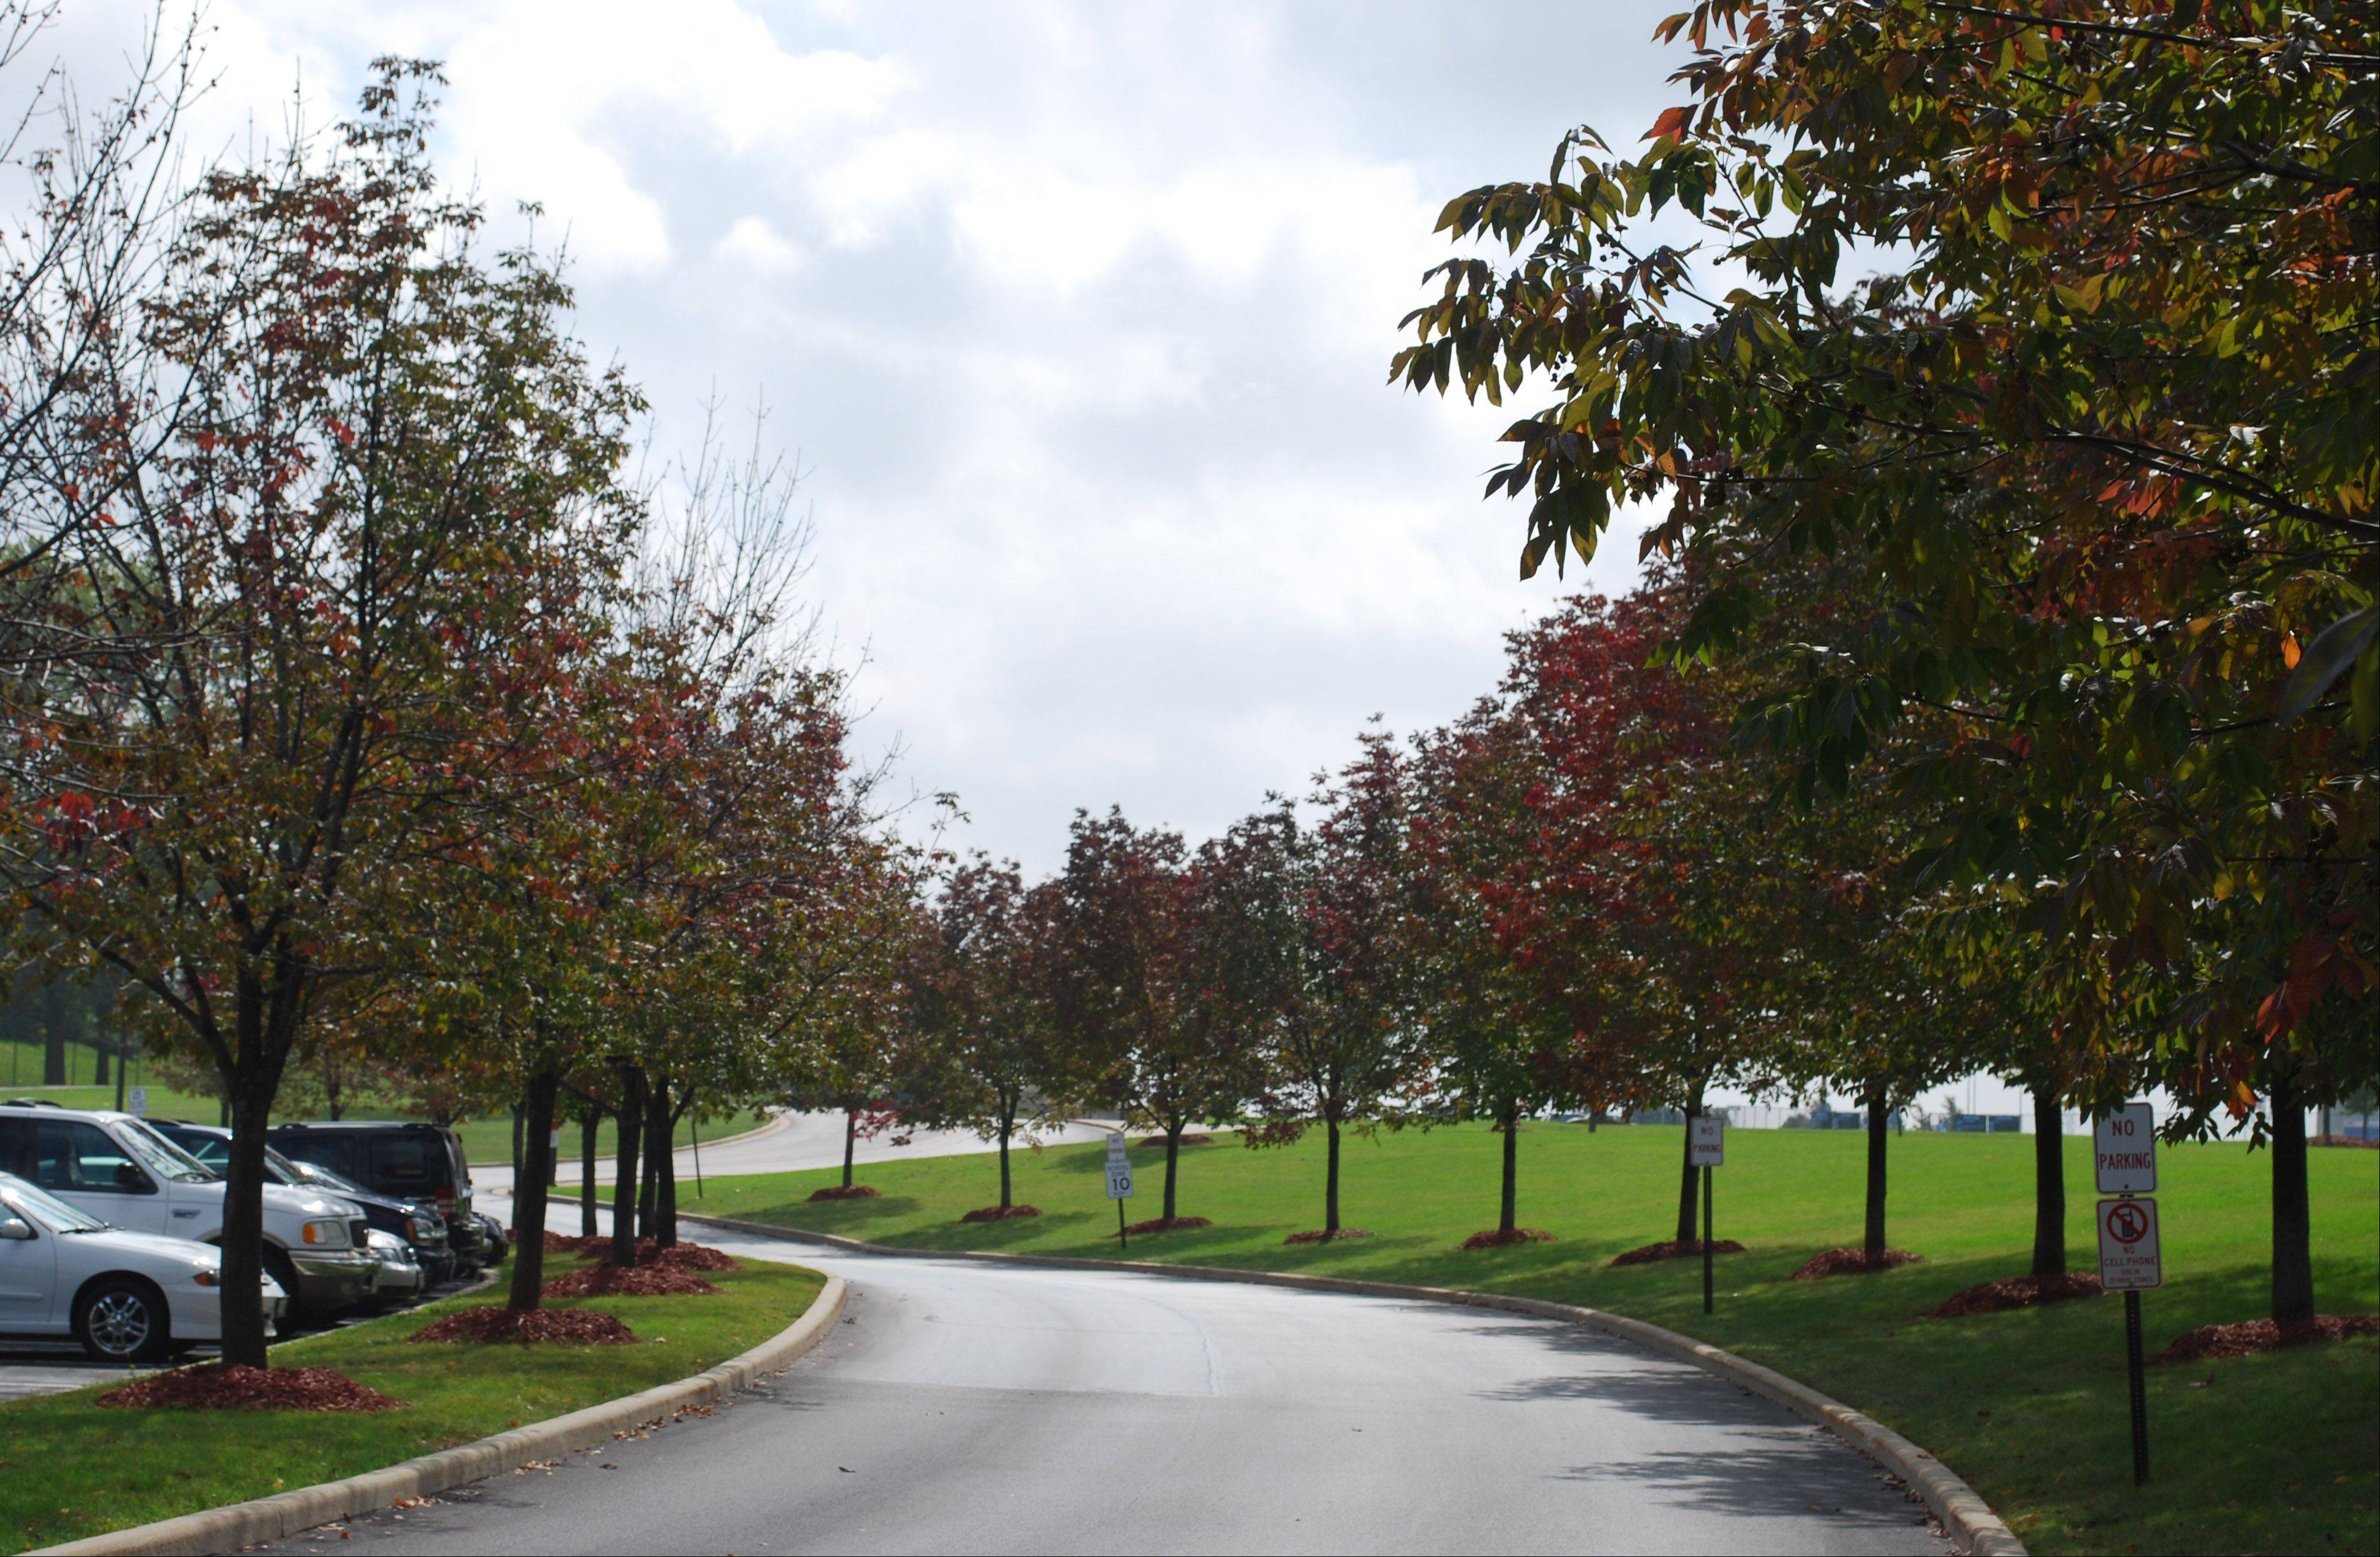 The scenic tree-lined main drive to Vernon Hills High School will be wiped out Saturday as the school takes out 45 trees infested with the emerald ash borer.